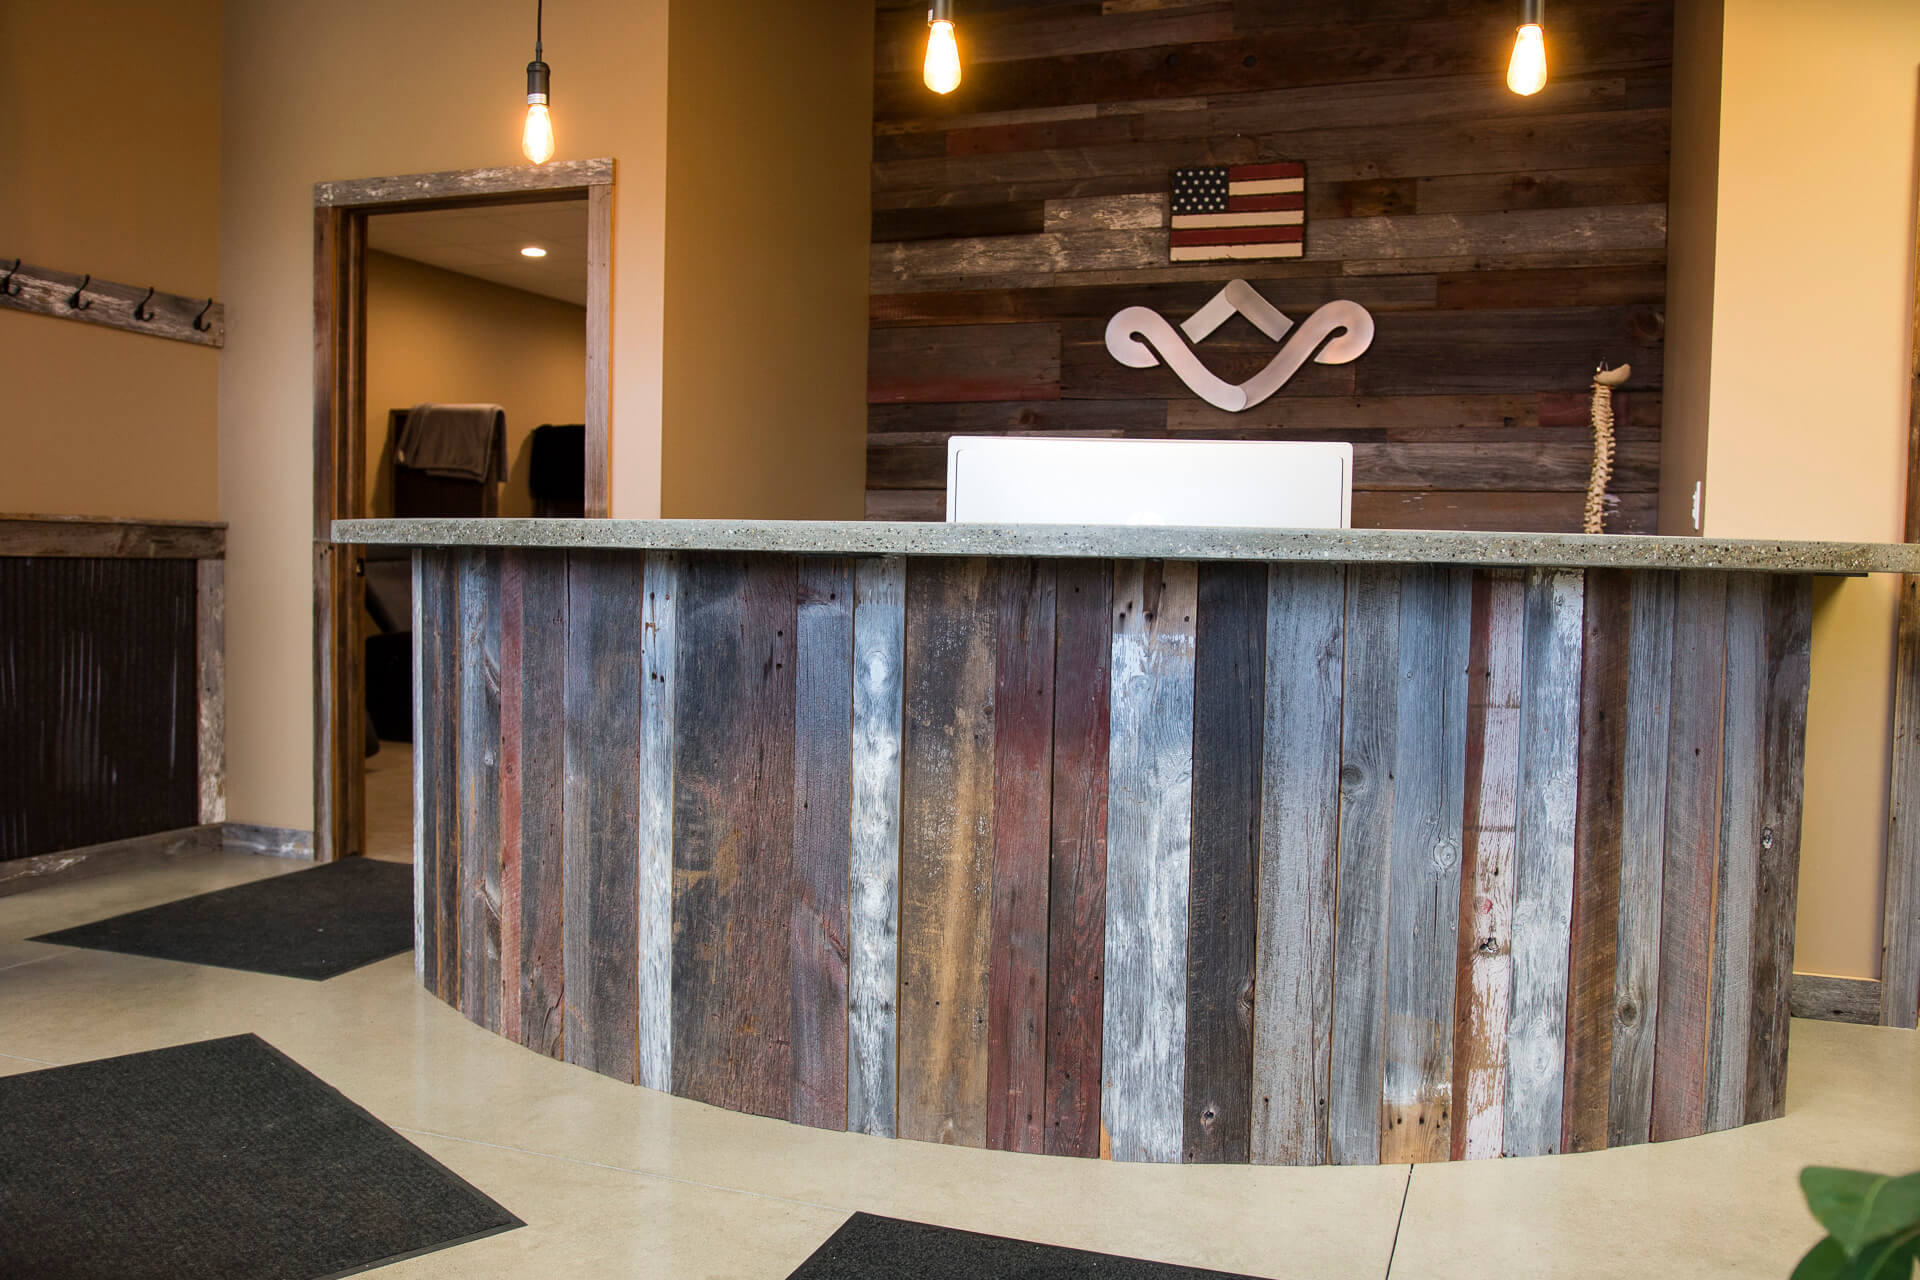 Lobby featuring barn wood and rustic lighting